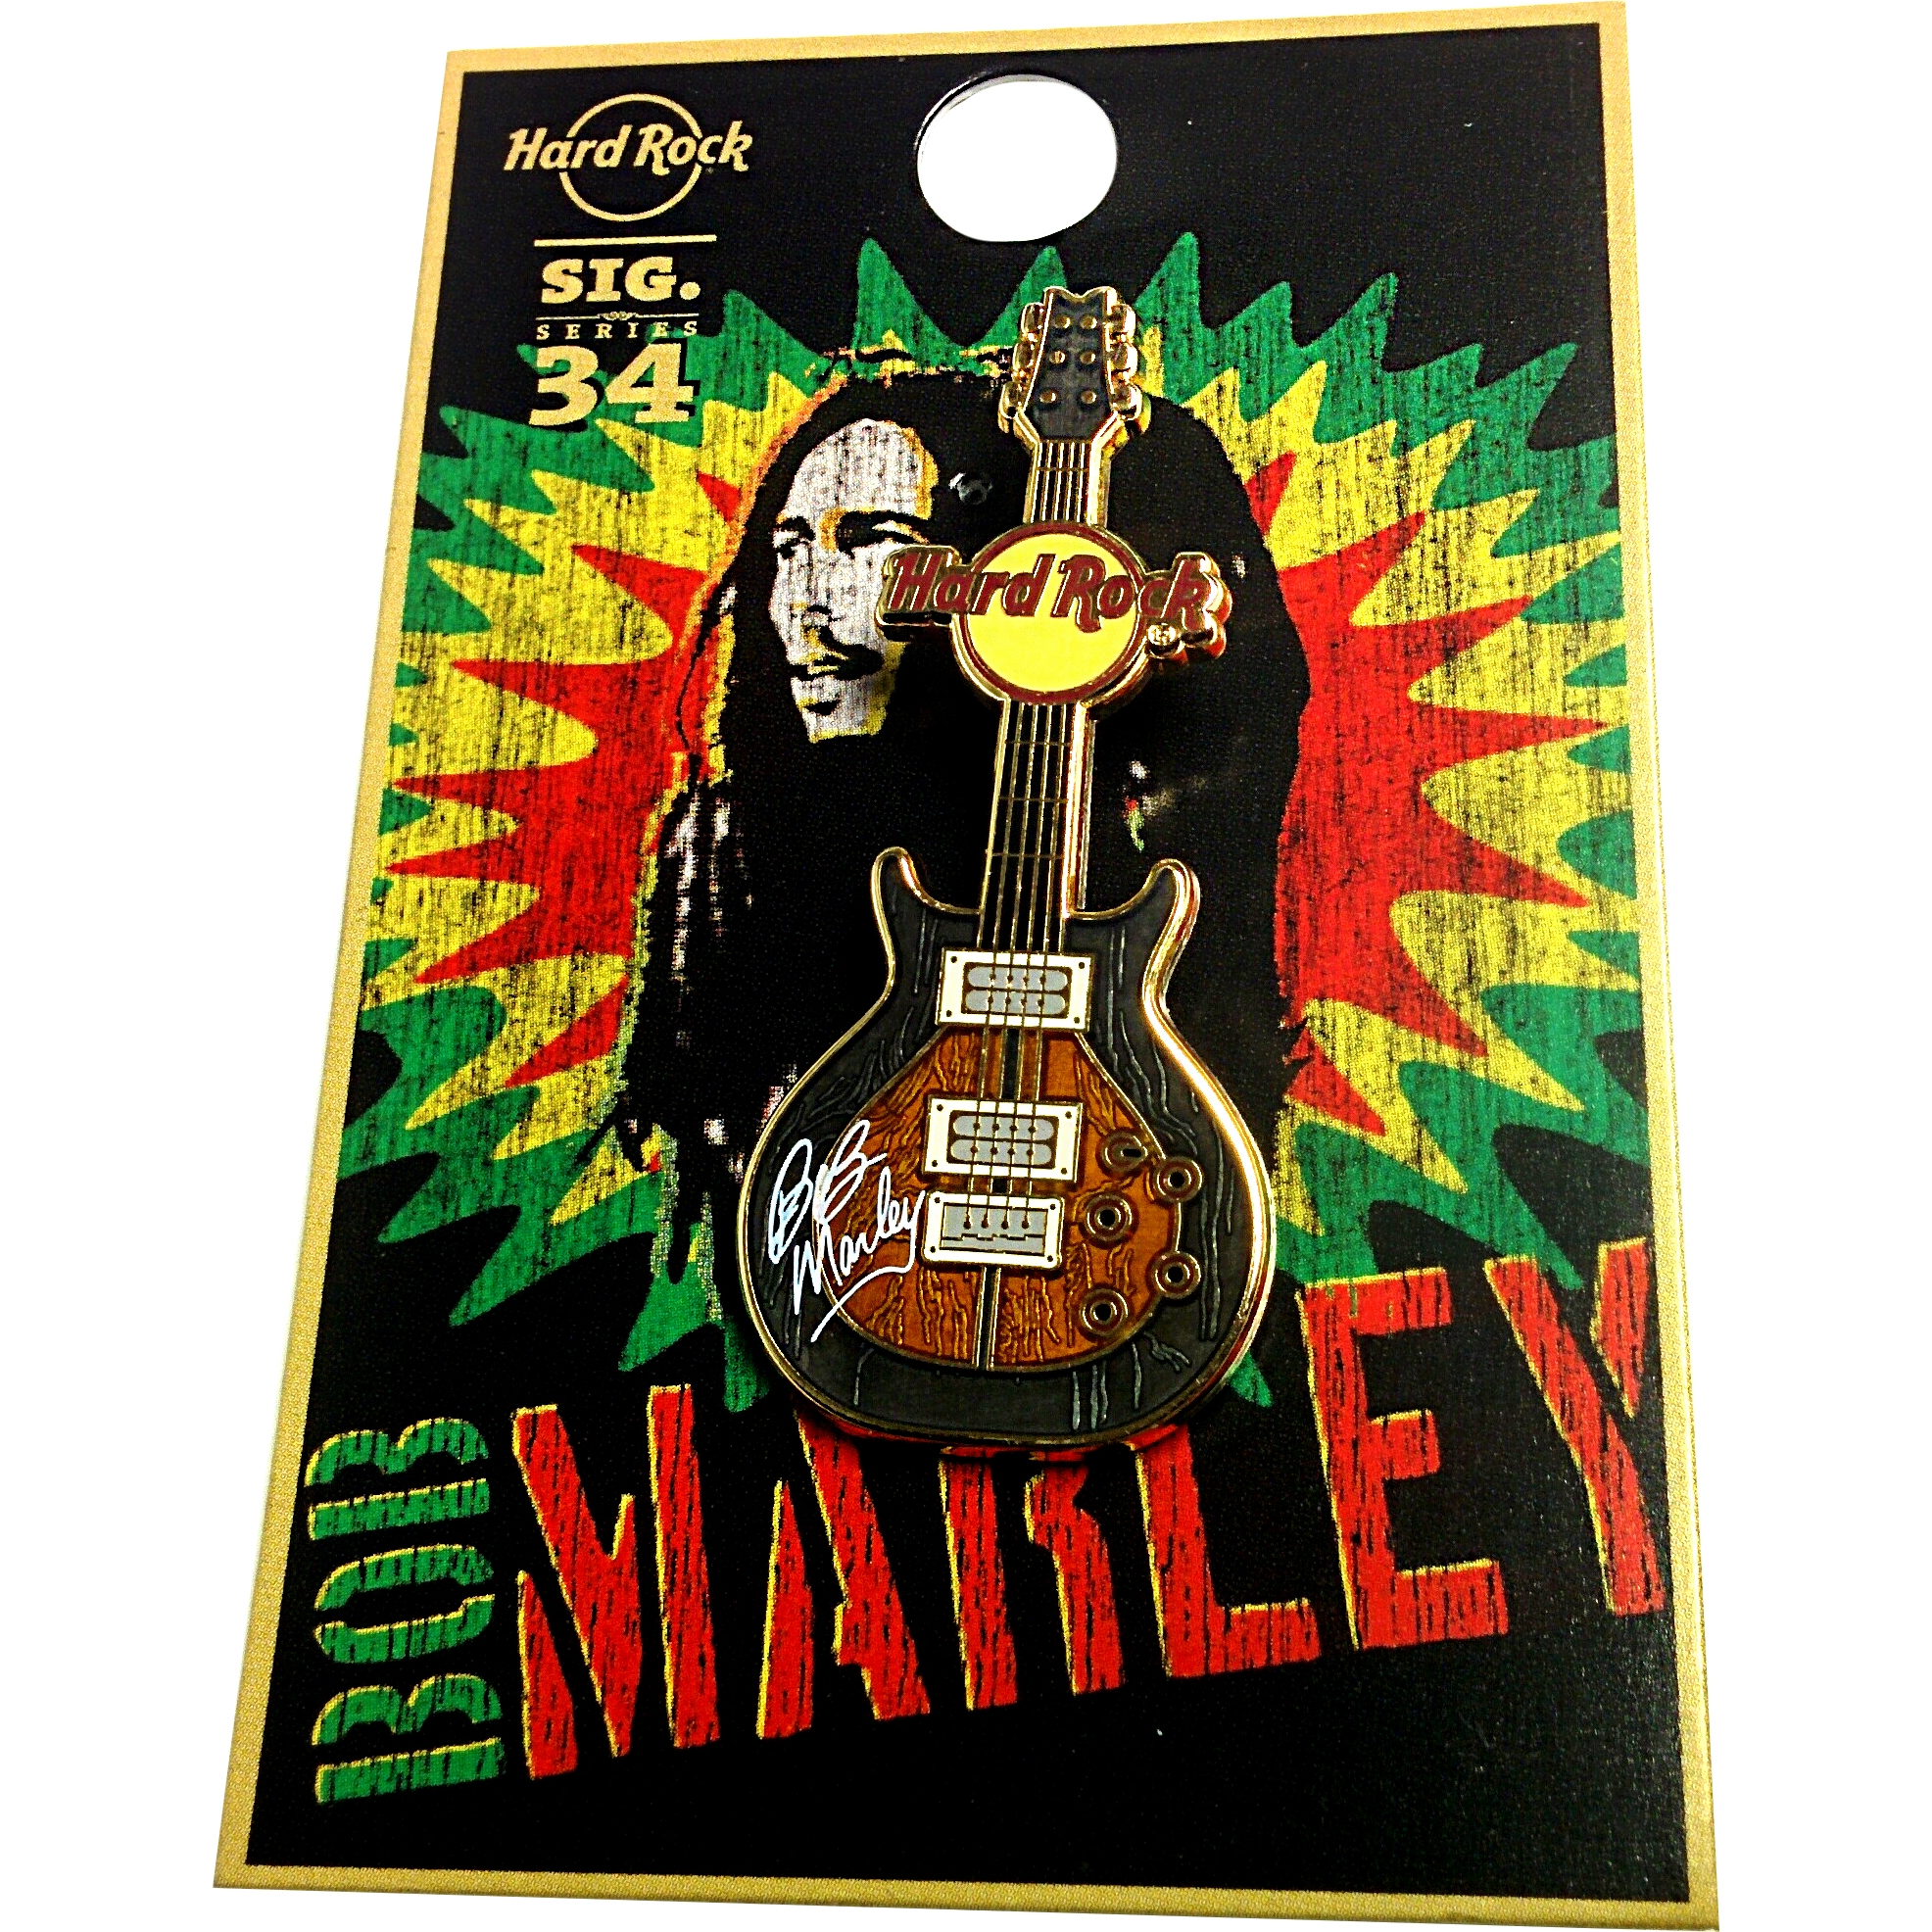 Bob Marley Signature Series 34 Pin 0